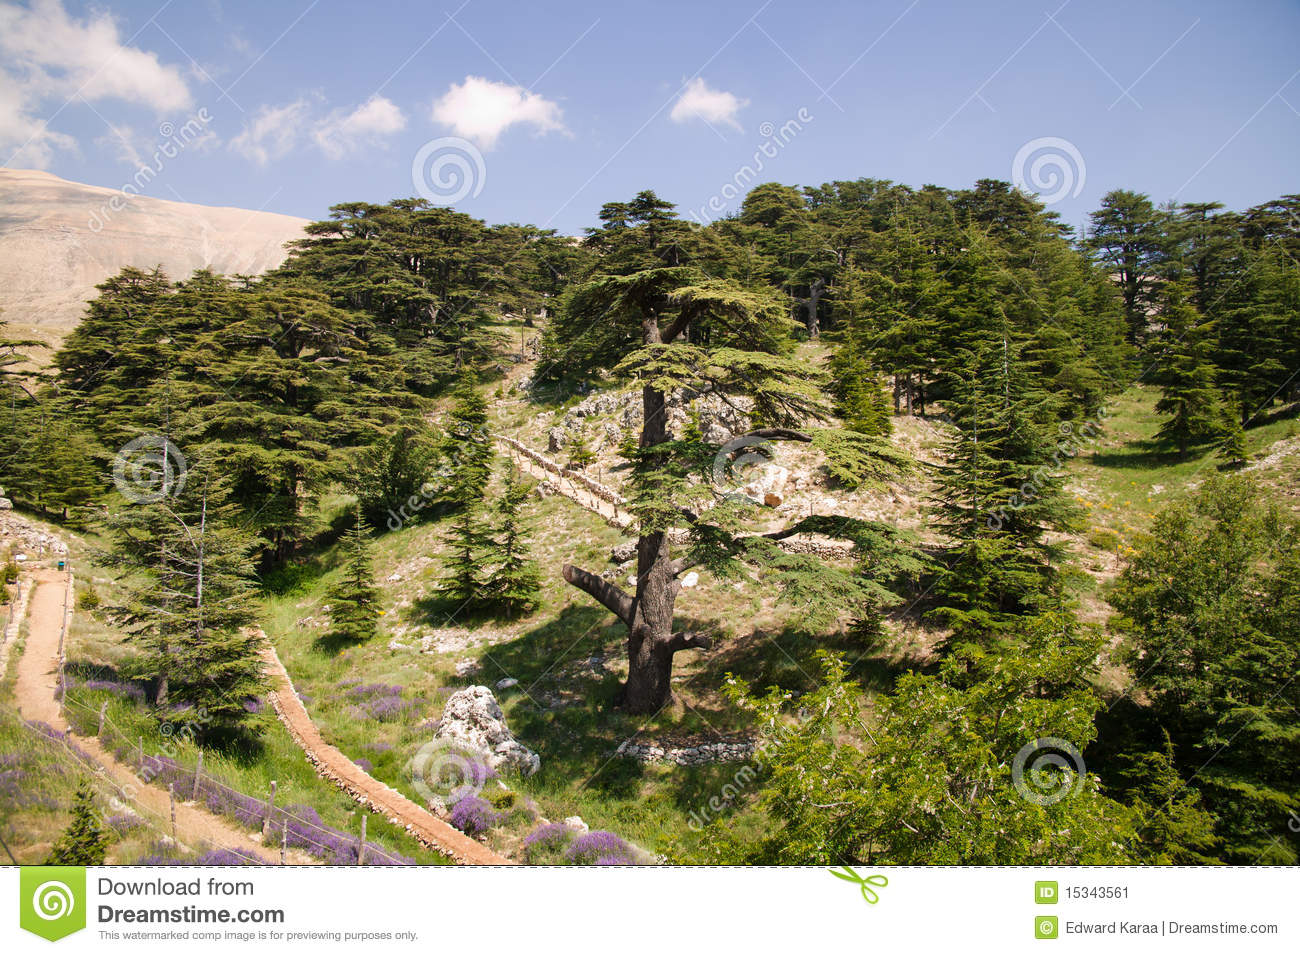 Bcharre. Lebanon Stock Photo.